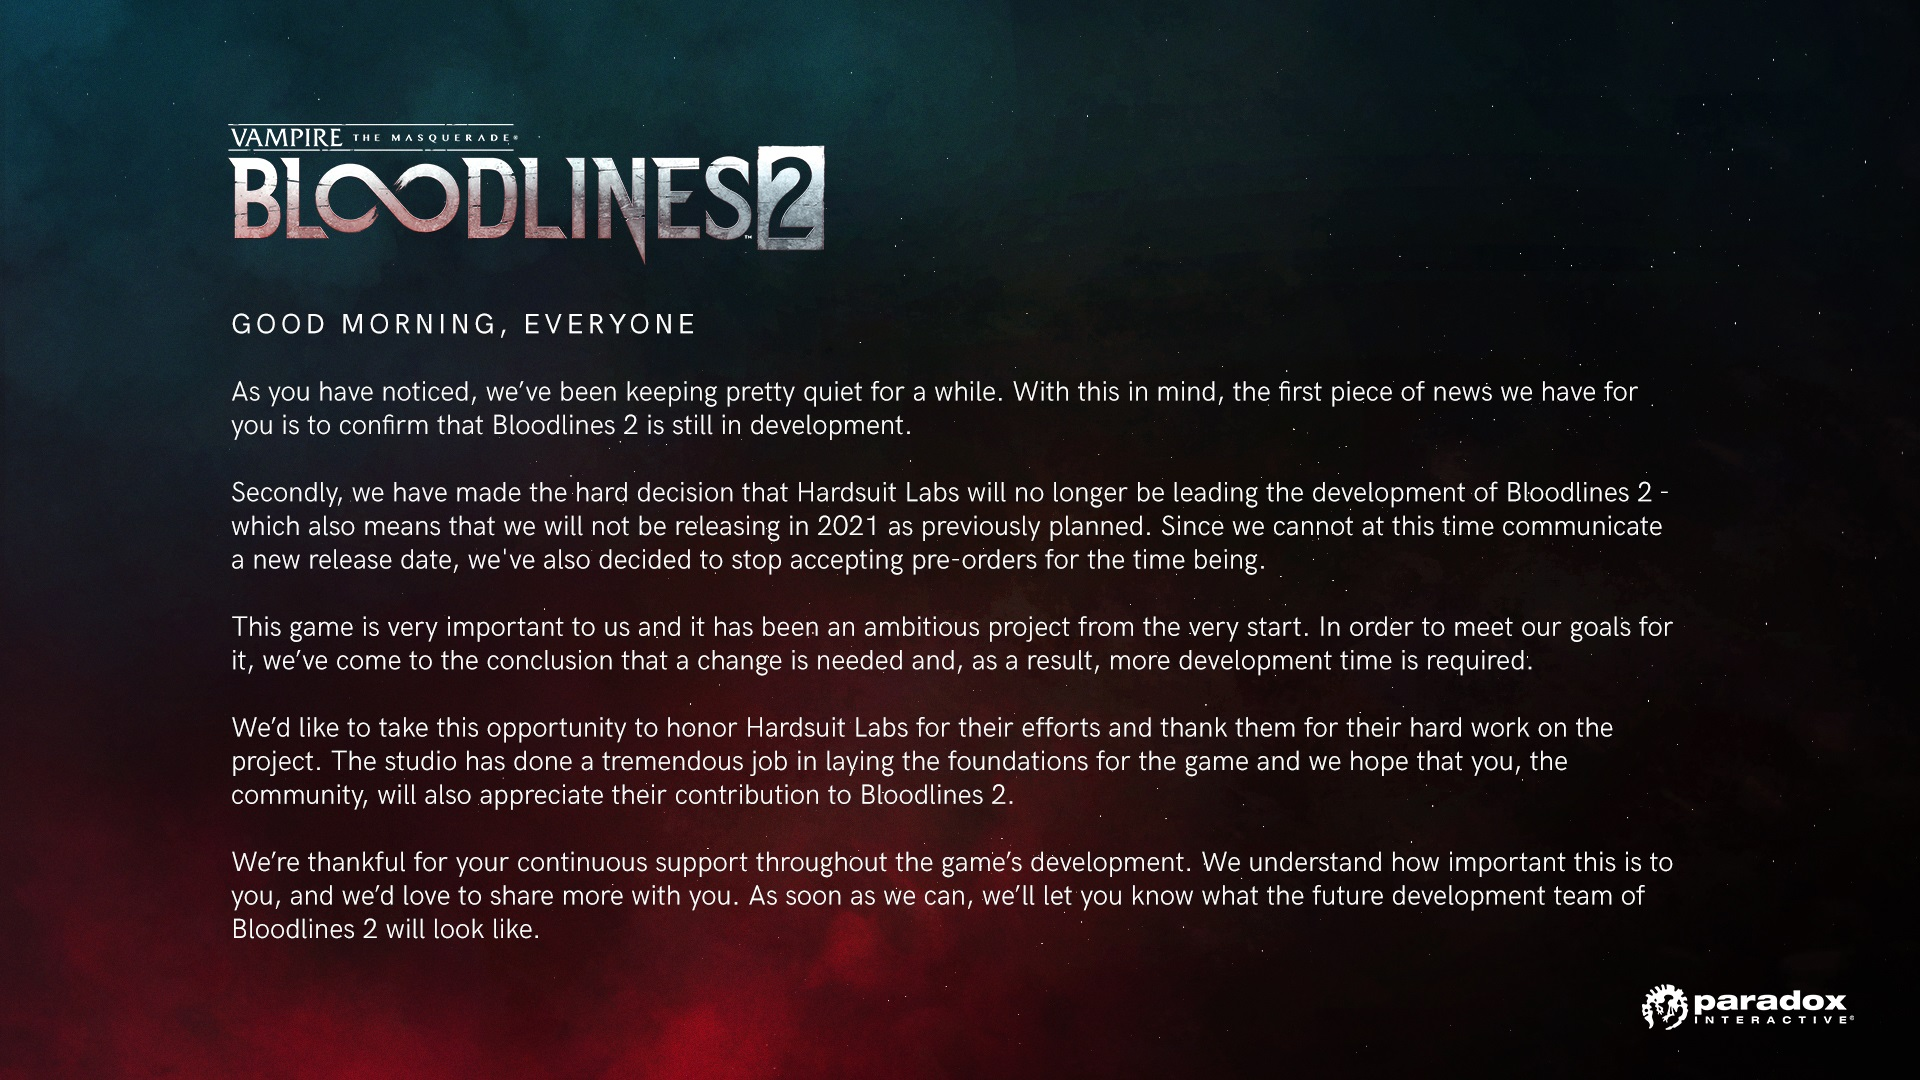 Vampire: The Masquerade - Bloodlines 2 delay announcement